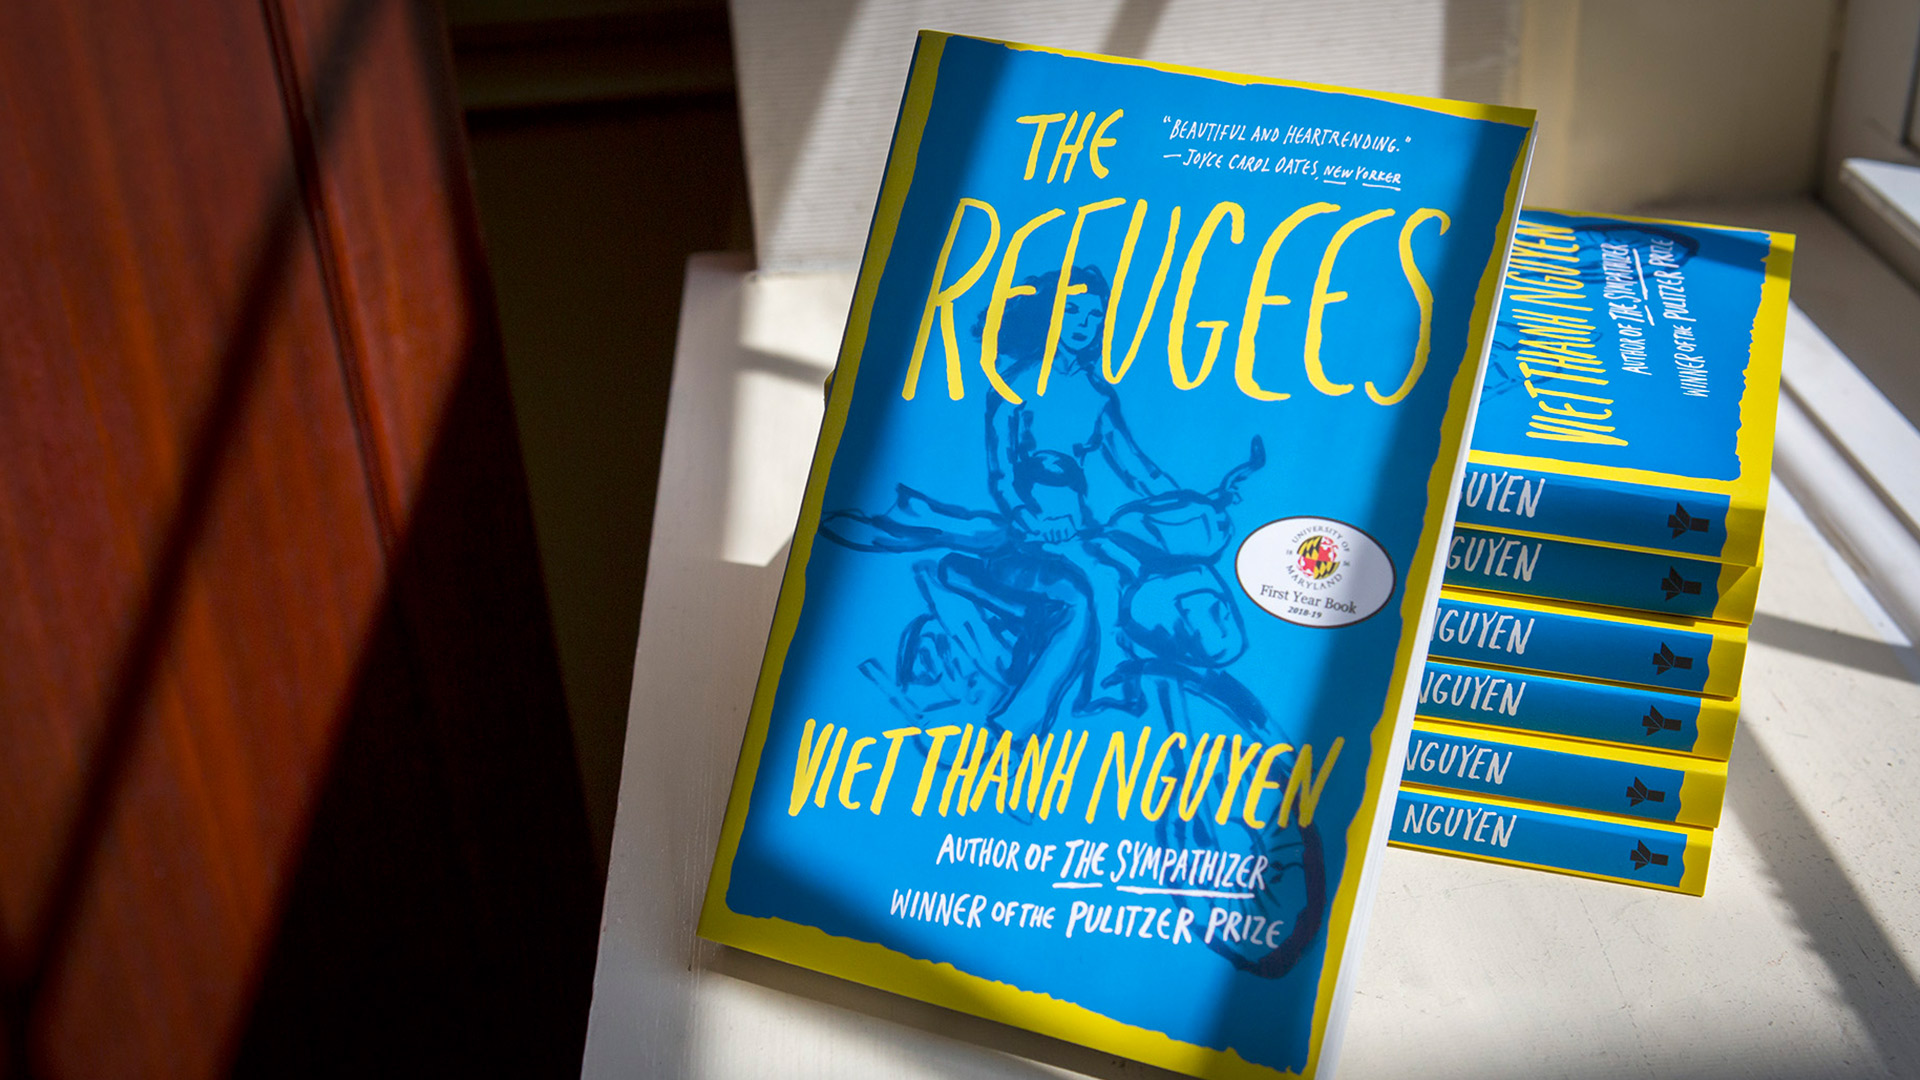 """The Refugees"" Author Viet Thanh Nguyen Addresses Terps Oct. 23"